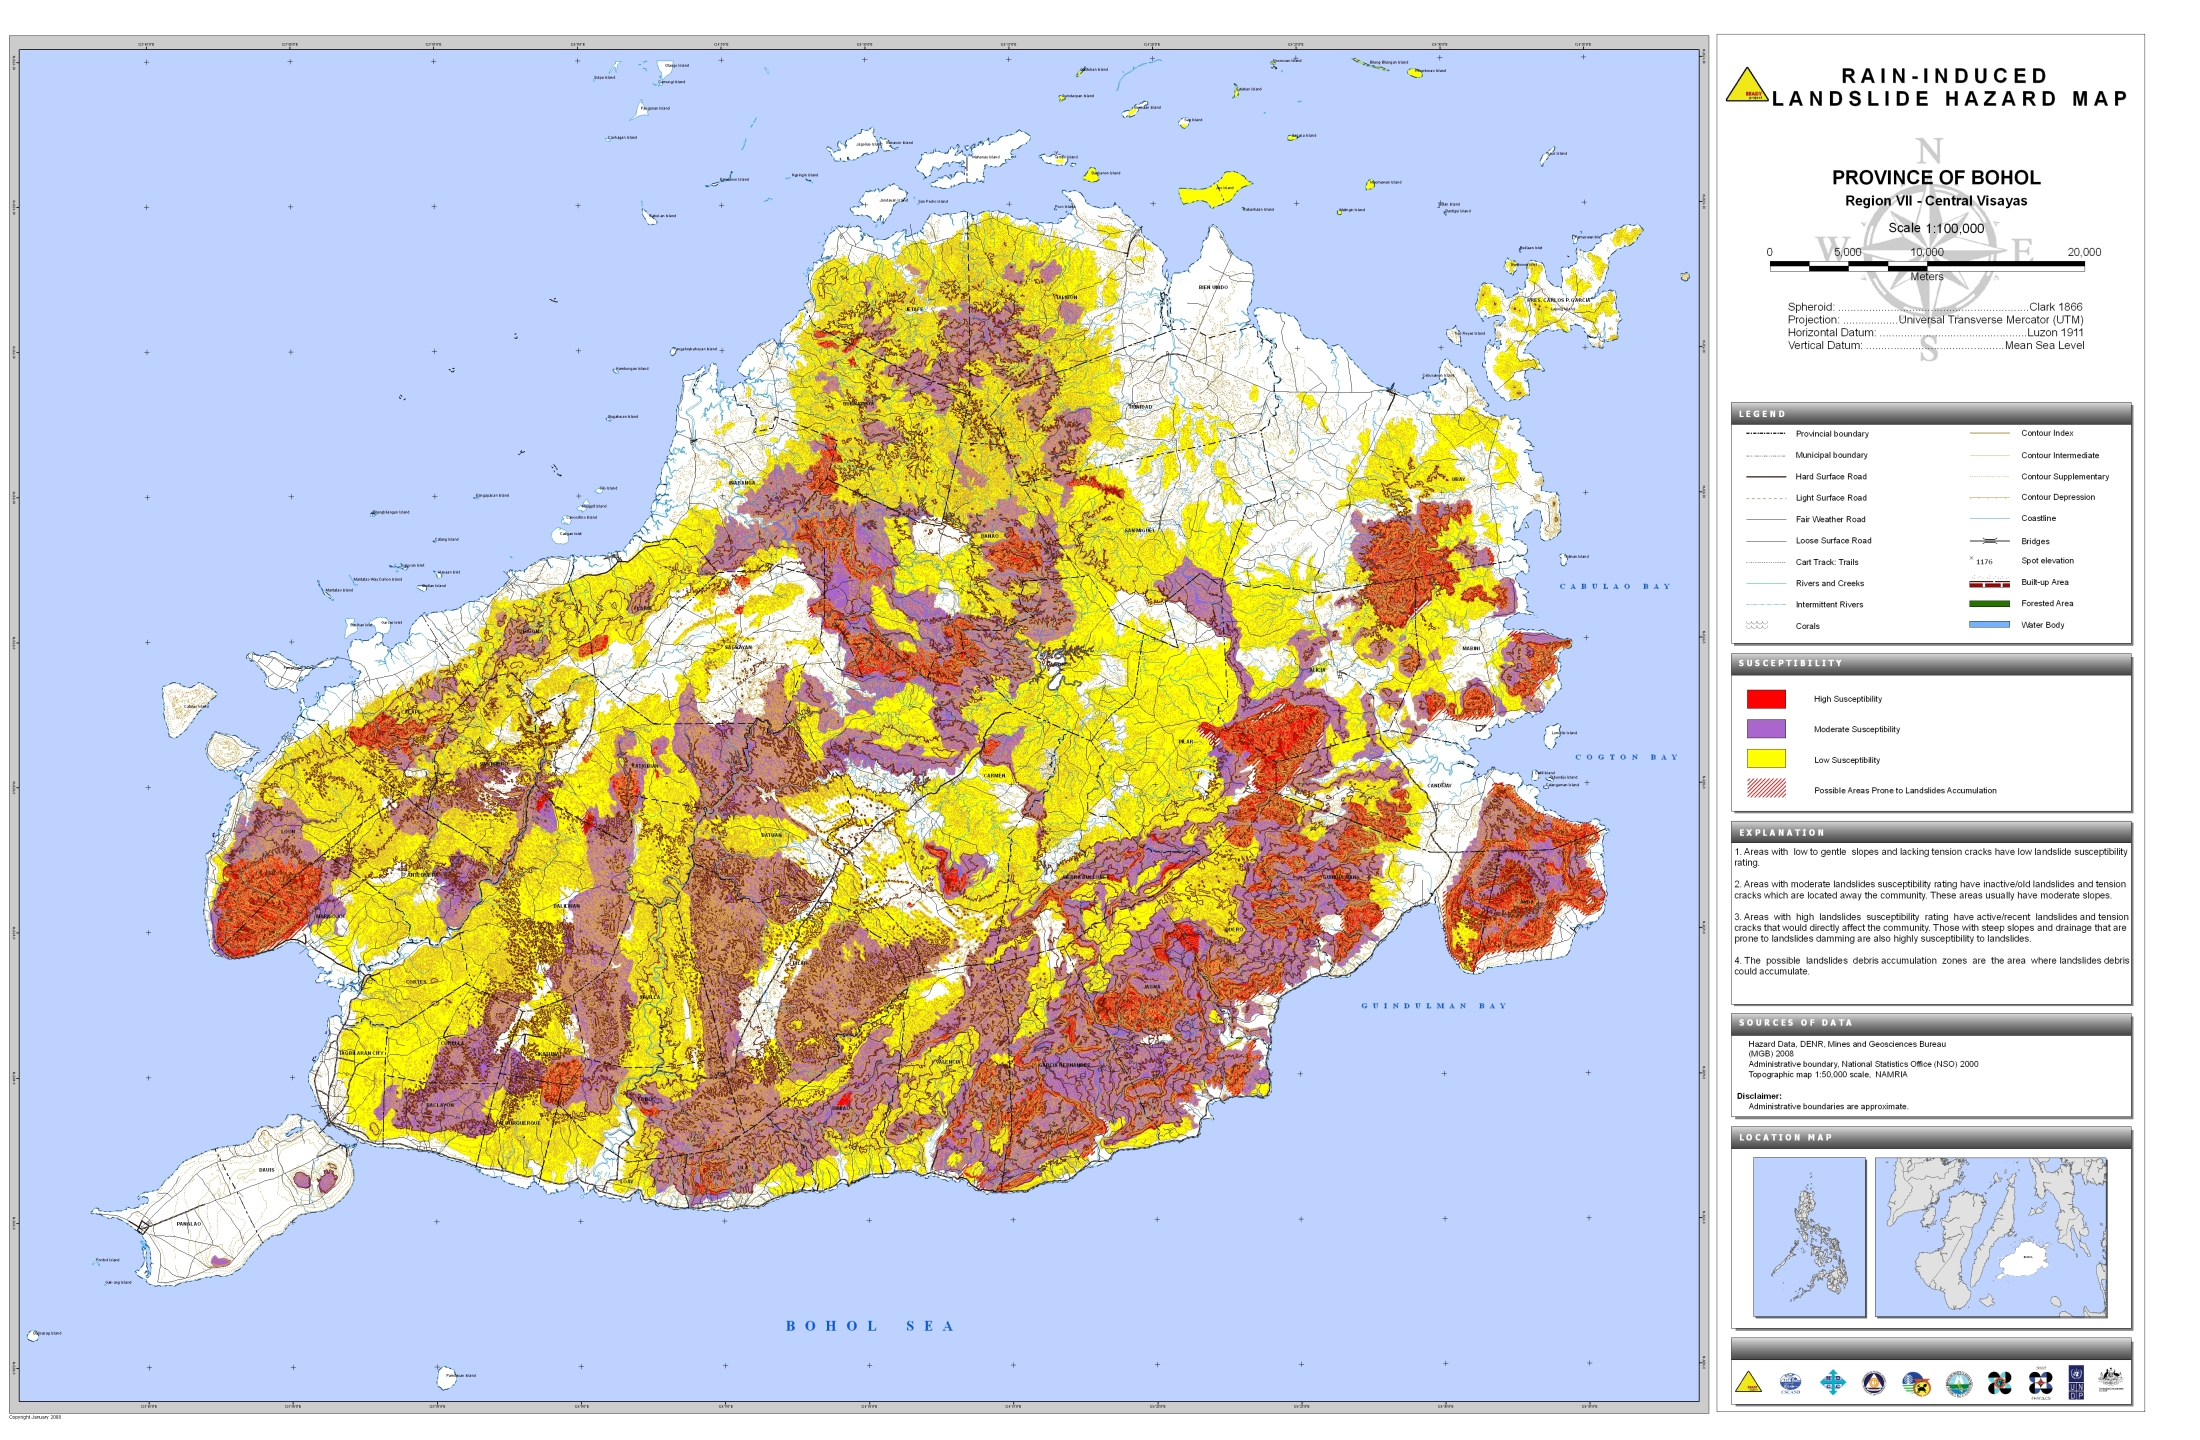 Bohol Rain-Induced Landslide Hazard Map